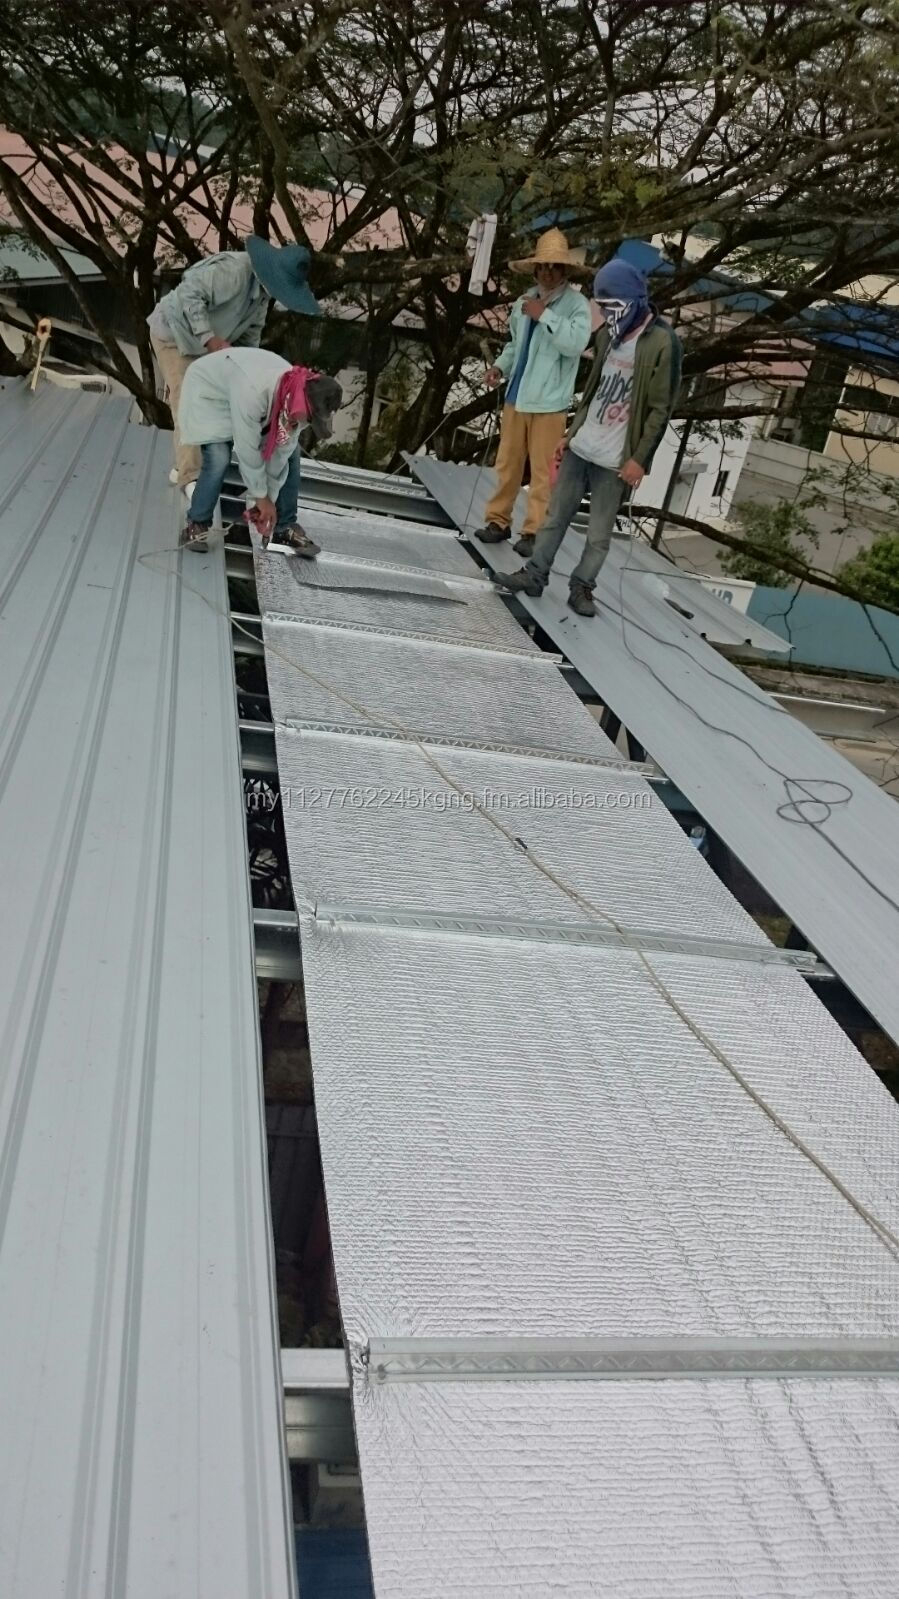 Avantgarde All-in-one Aluminium Foil / Radiant Barrier - Thermafoil Heat  Insulation - Buy Foam Roof System Product on Alibaba com